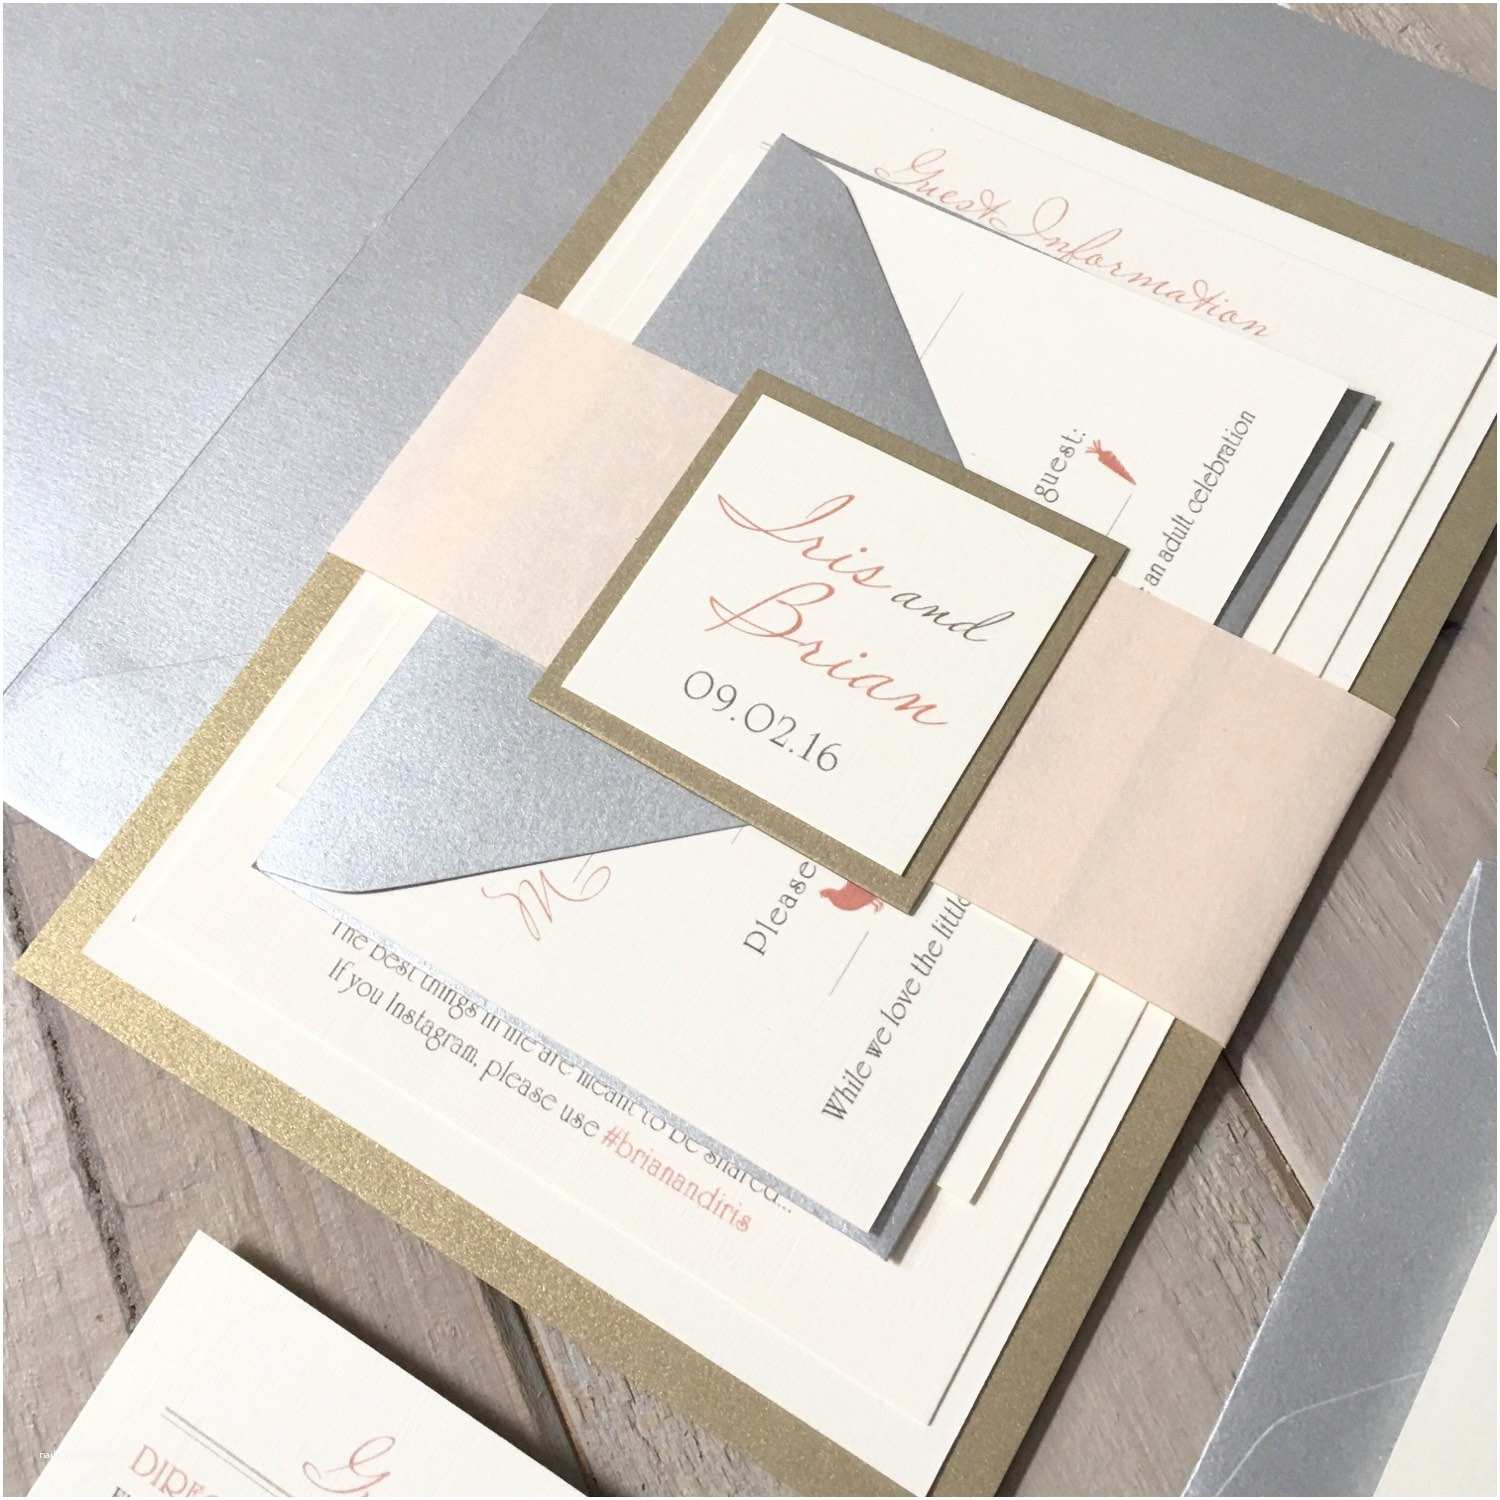 Ivory and Gold Wedding Invitations Blush Ivory and Gold Wedding Invitations Blush Silver and